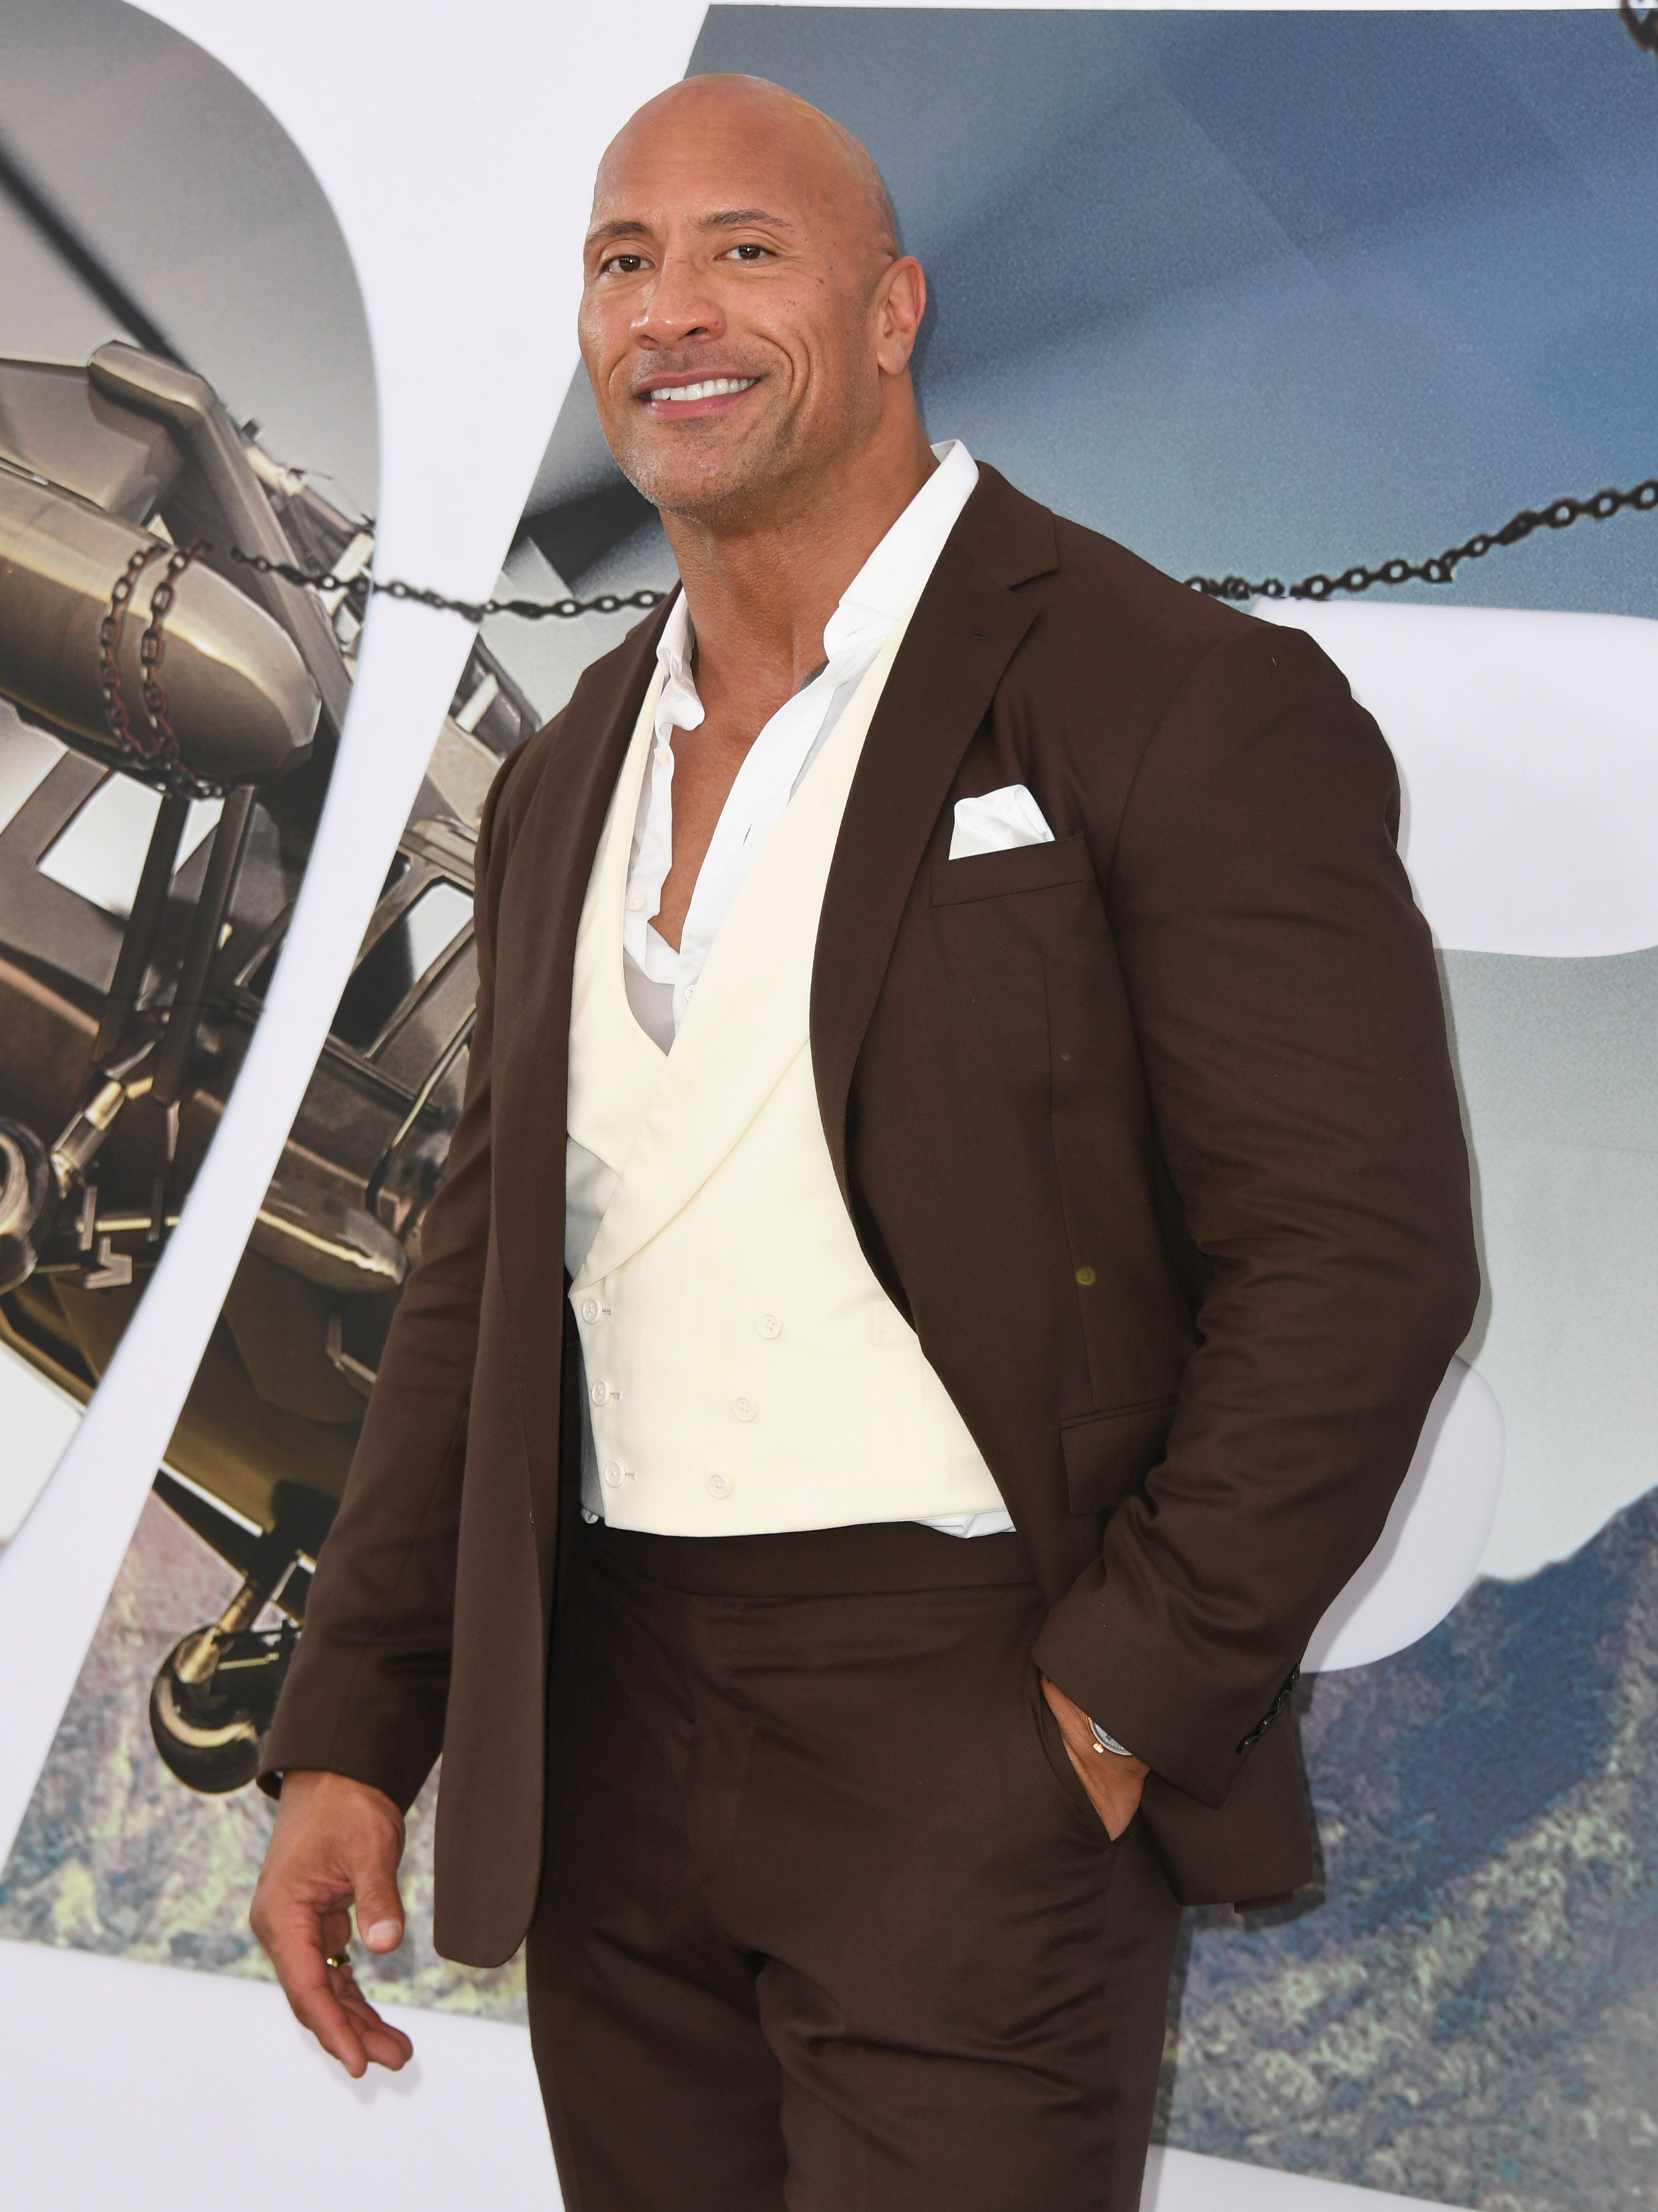 Dwayne Johnson en el estreno de 'Fast & Furious Presents: Hobbs & Shaw', en el Dolby Theatre el 13 de julio de 2019 en Hollywood, California. | Imagen: Getty Images